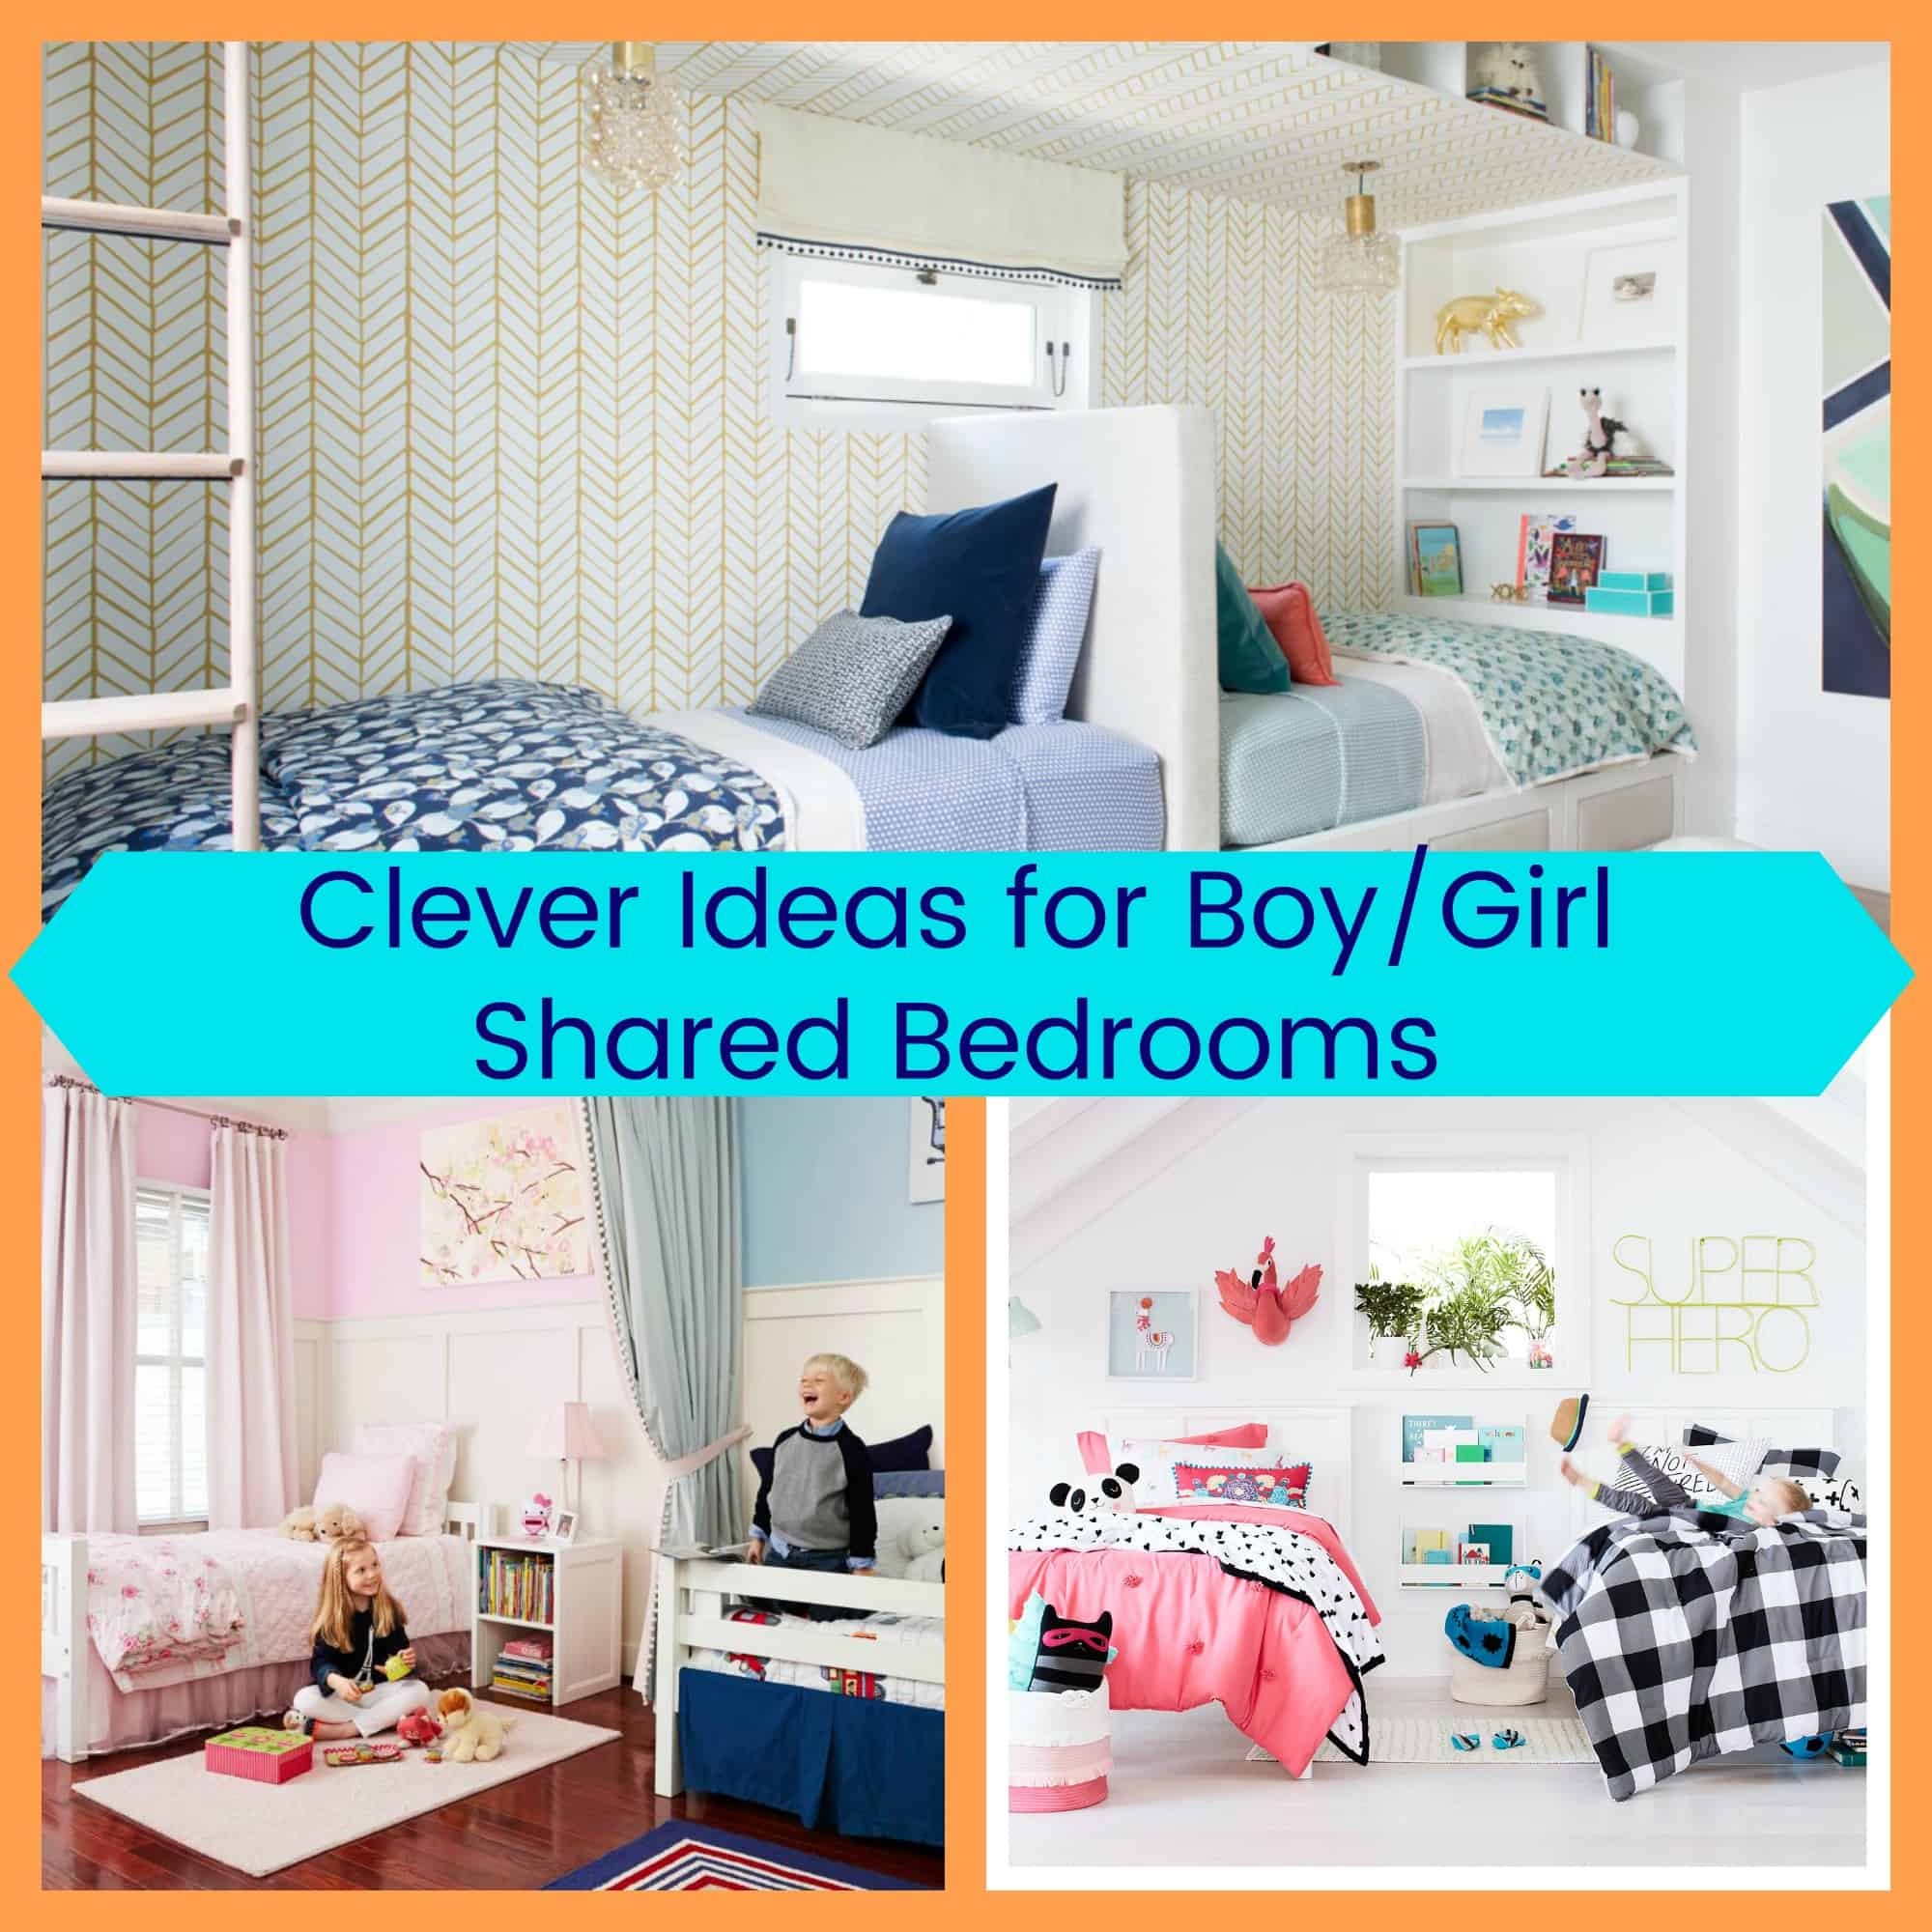 Boy Girl Bedroom Ideas: Clever Ideas For Boy/Girl Shared Bedrooms